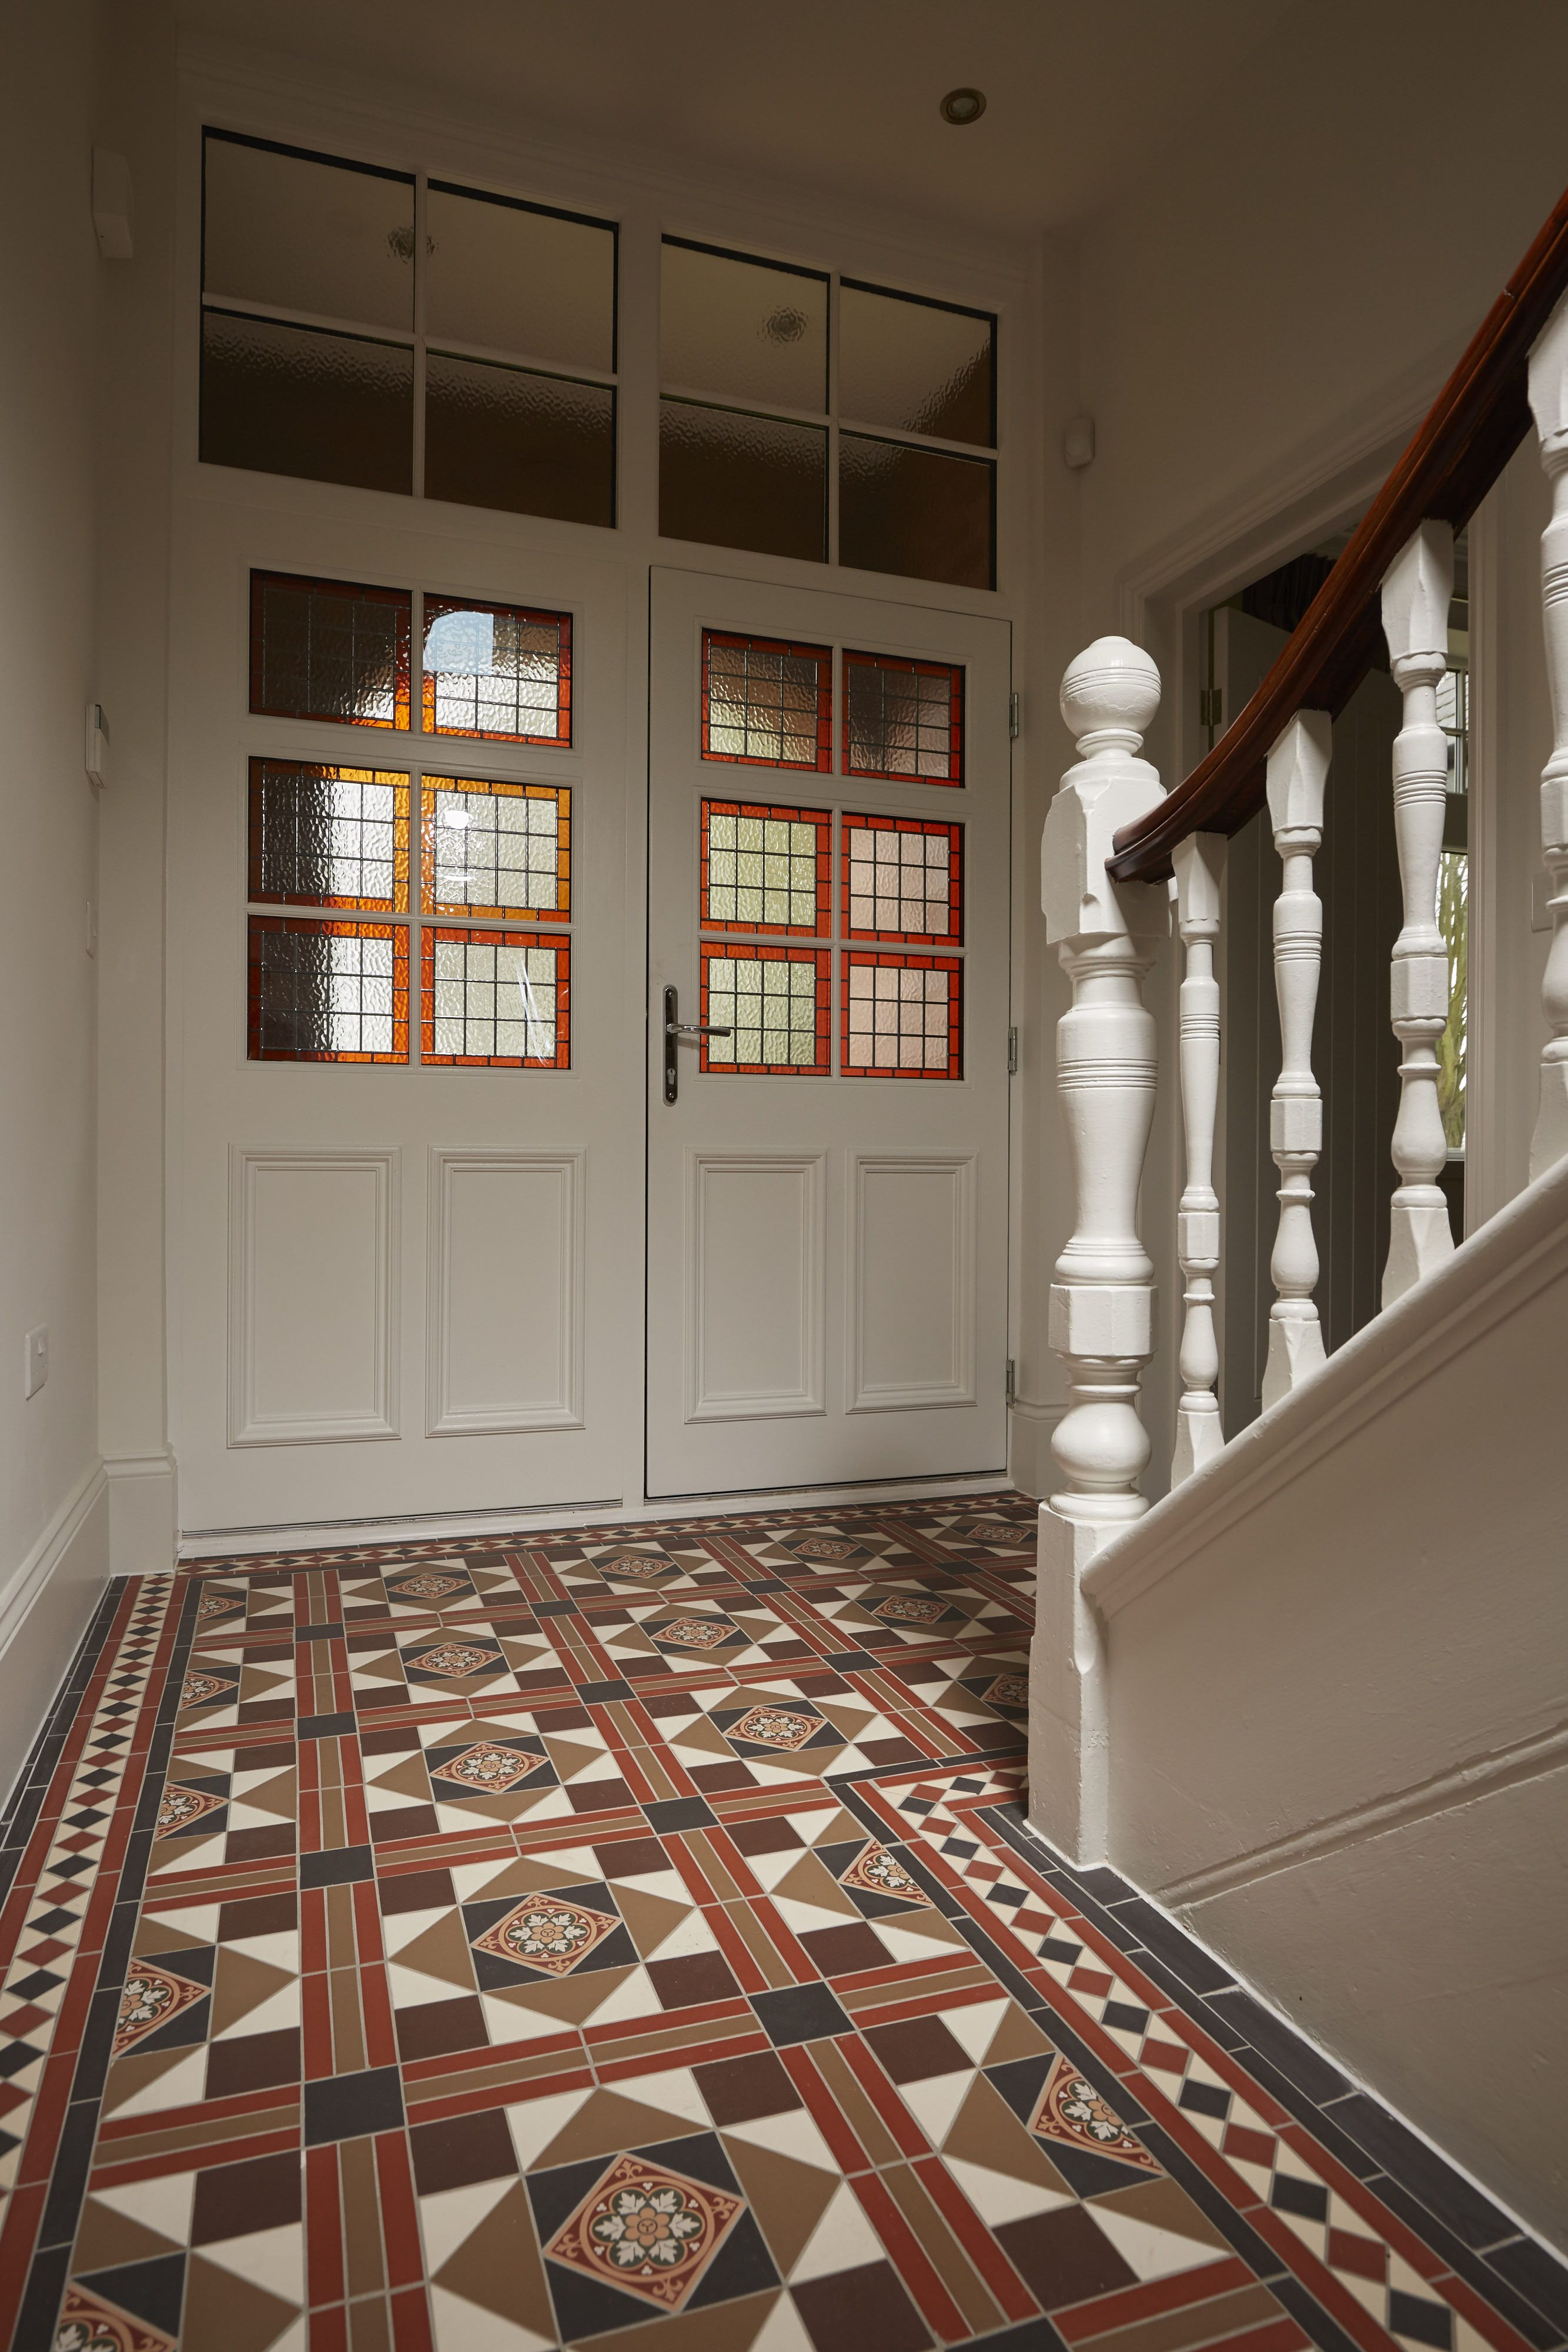 The lindisfarne pattern victorian floor tiles by original style uk geometric tile patterns victorian floor tiles dailygadgetfo Images